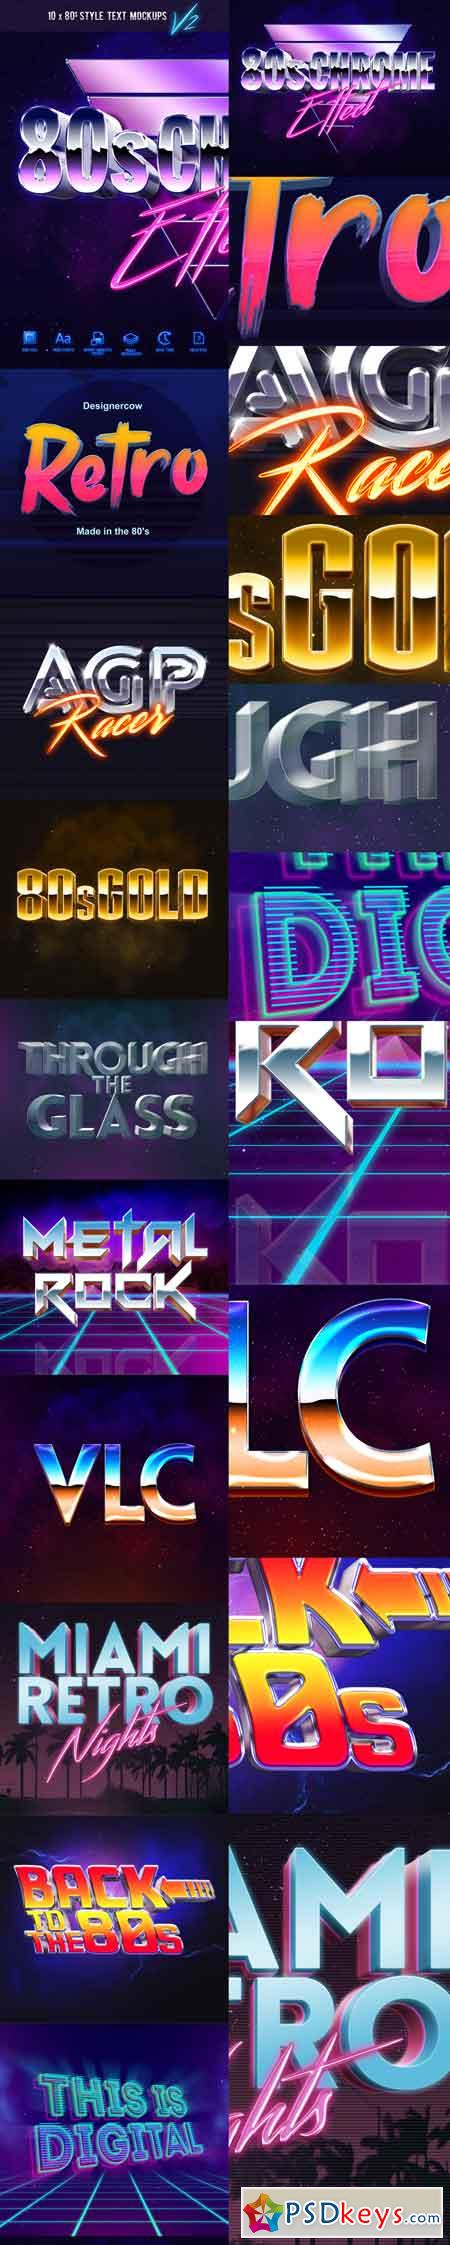 80's Style Text Mockups V2 15489361 » Free Download Photoshop Vector